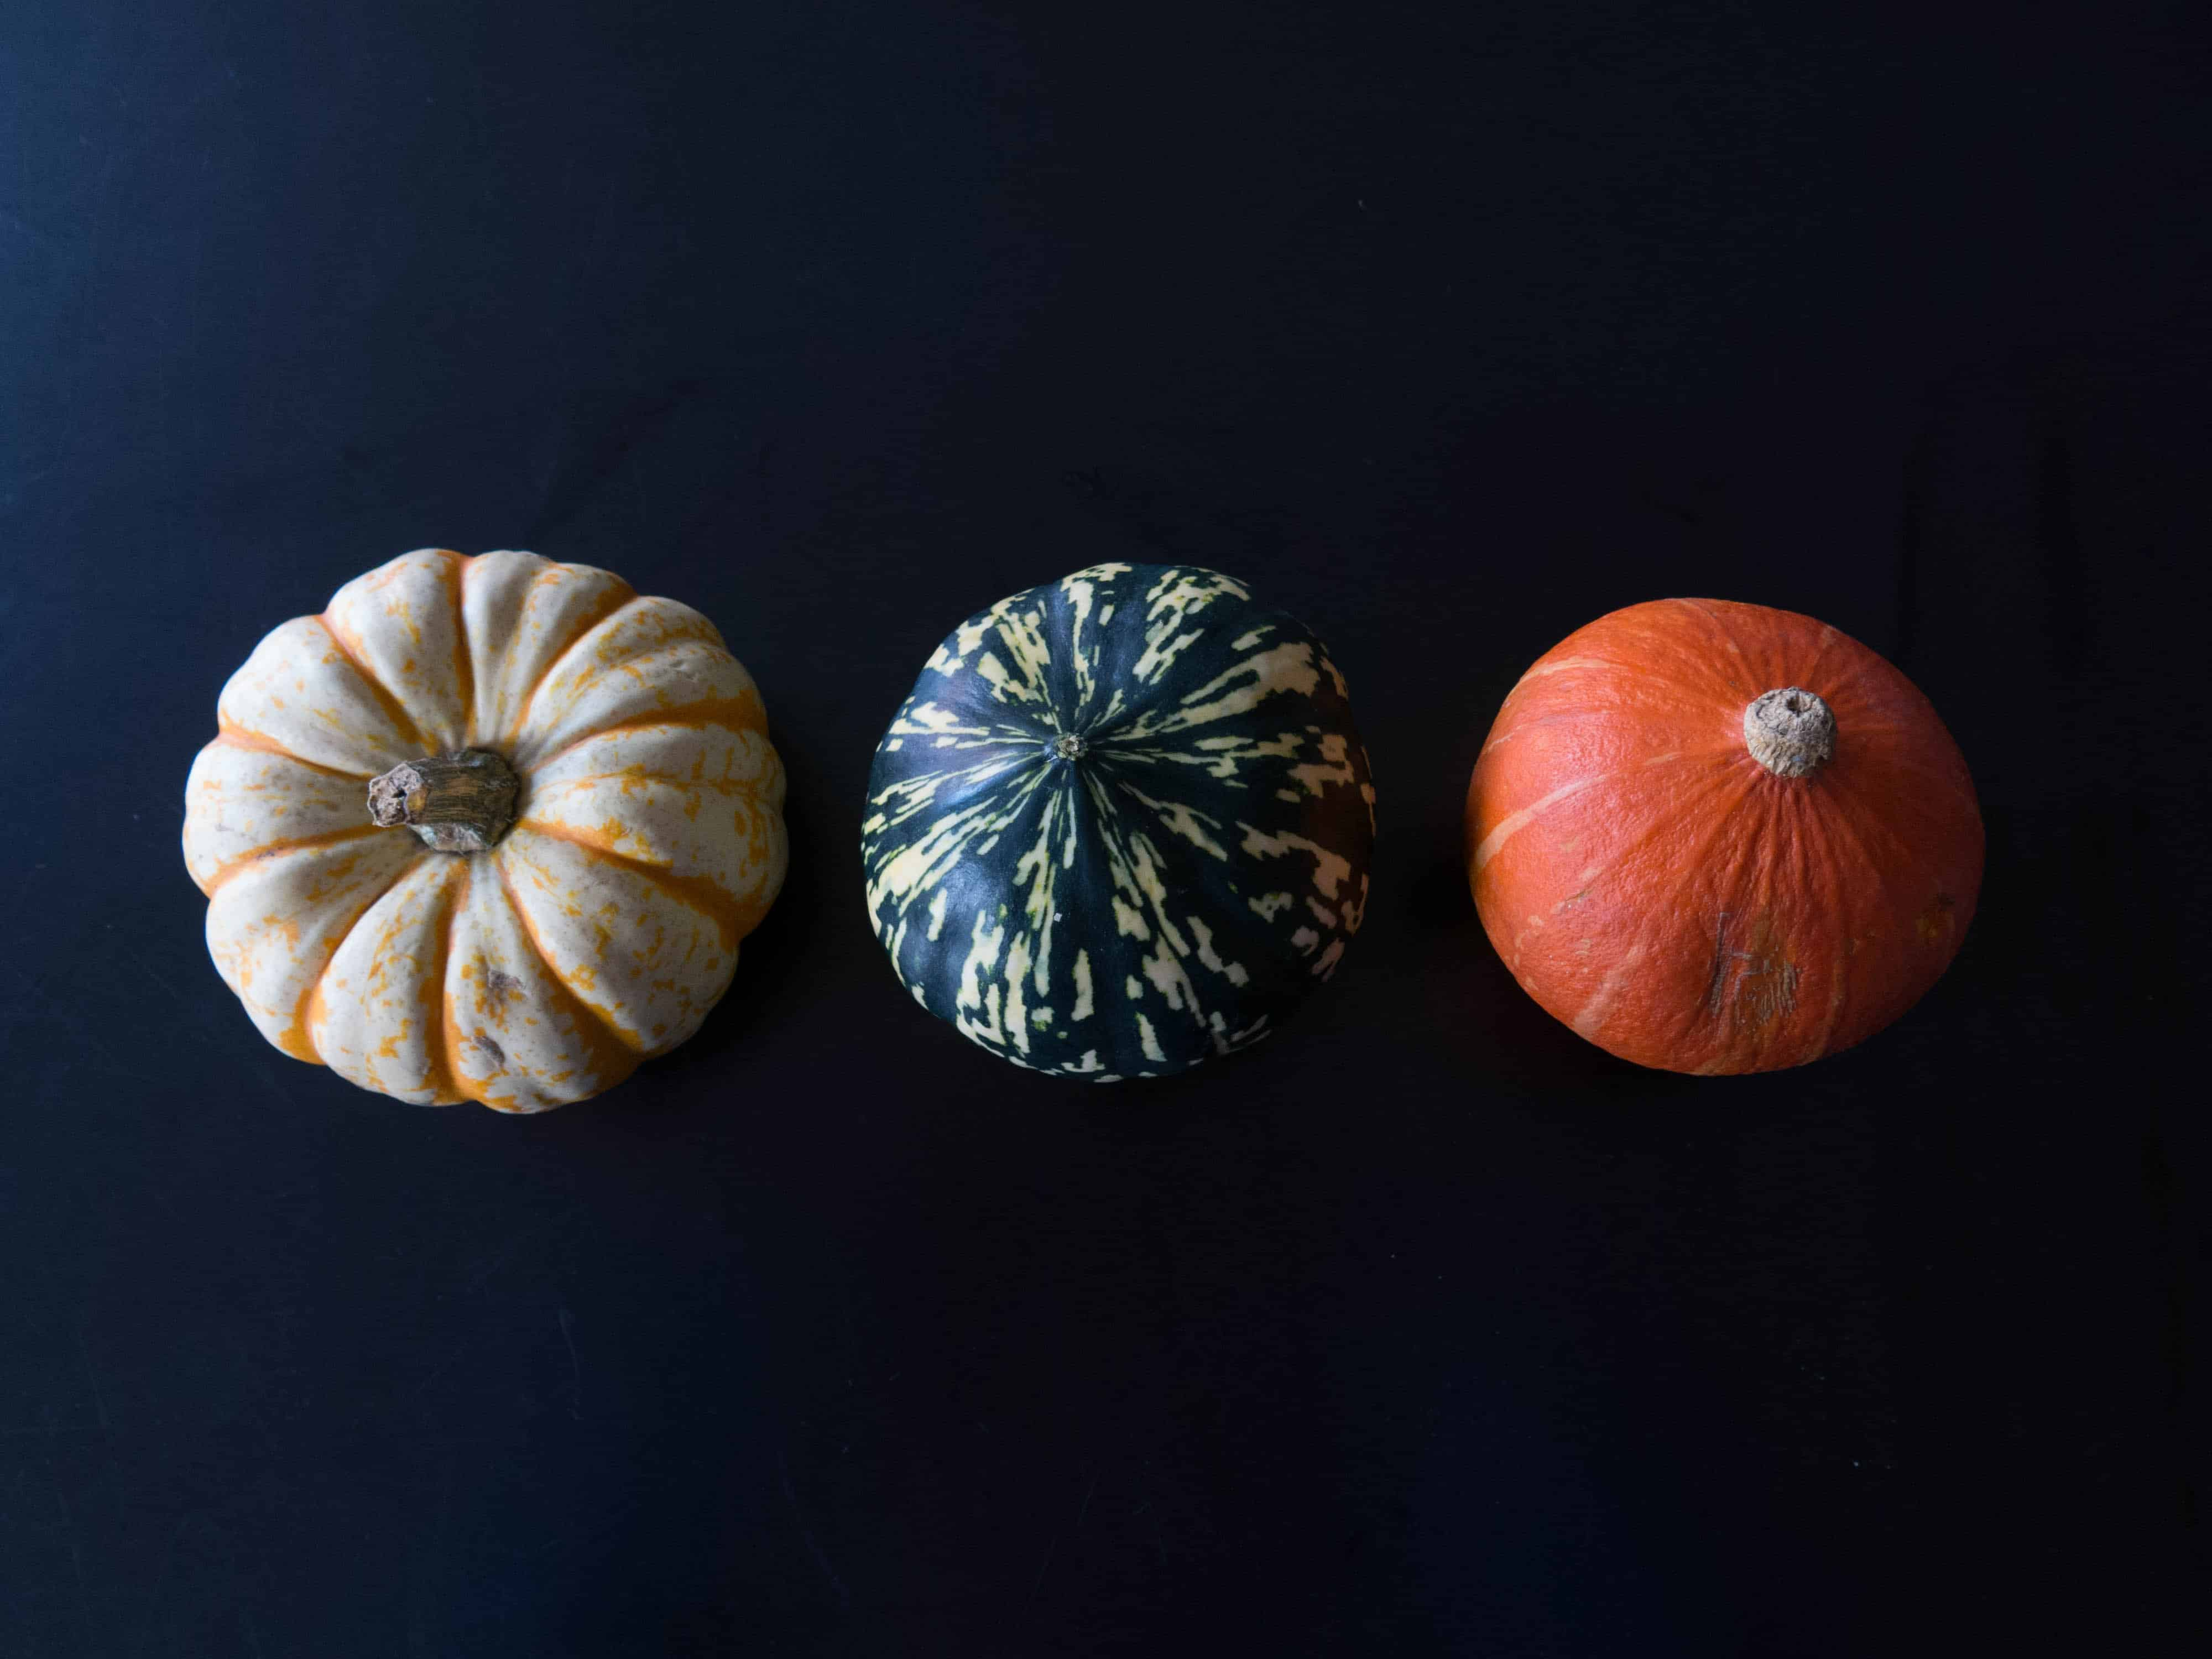 Assorted squash/ pumpkin. Beautiful, autumnal squash and pumpkin varieties. Ready for preparation and roasting.